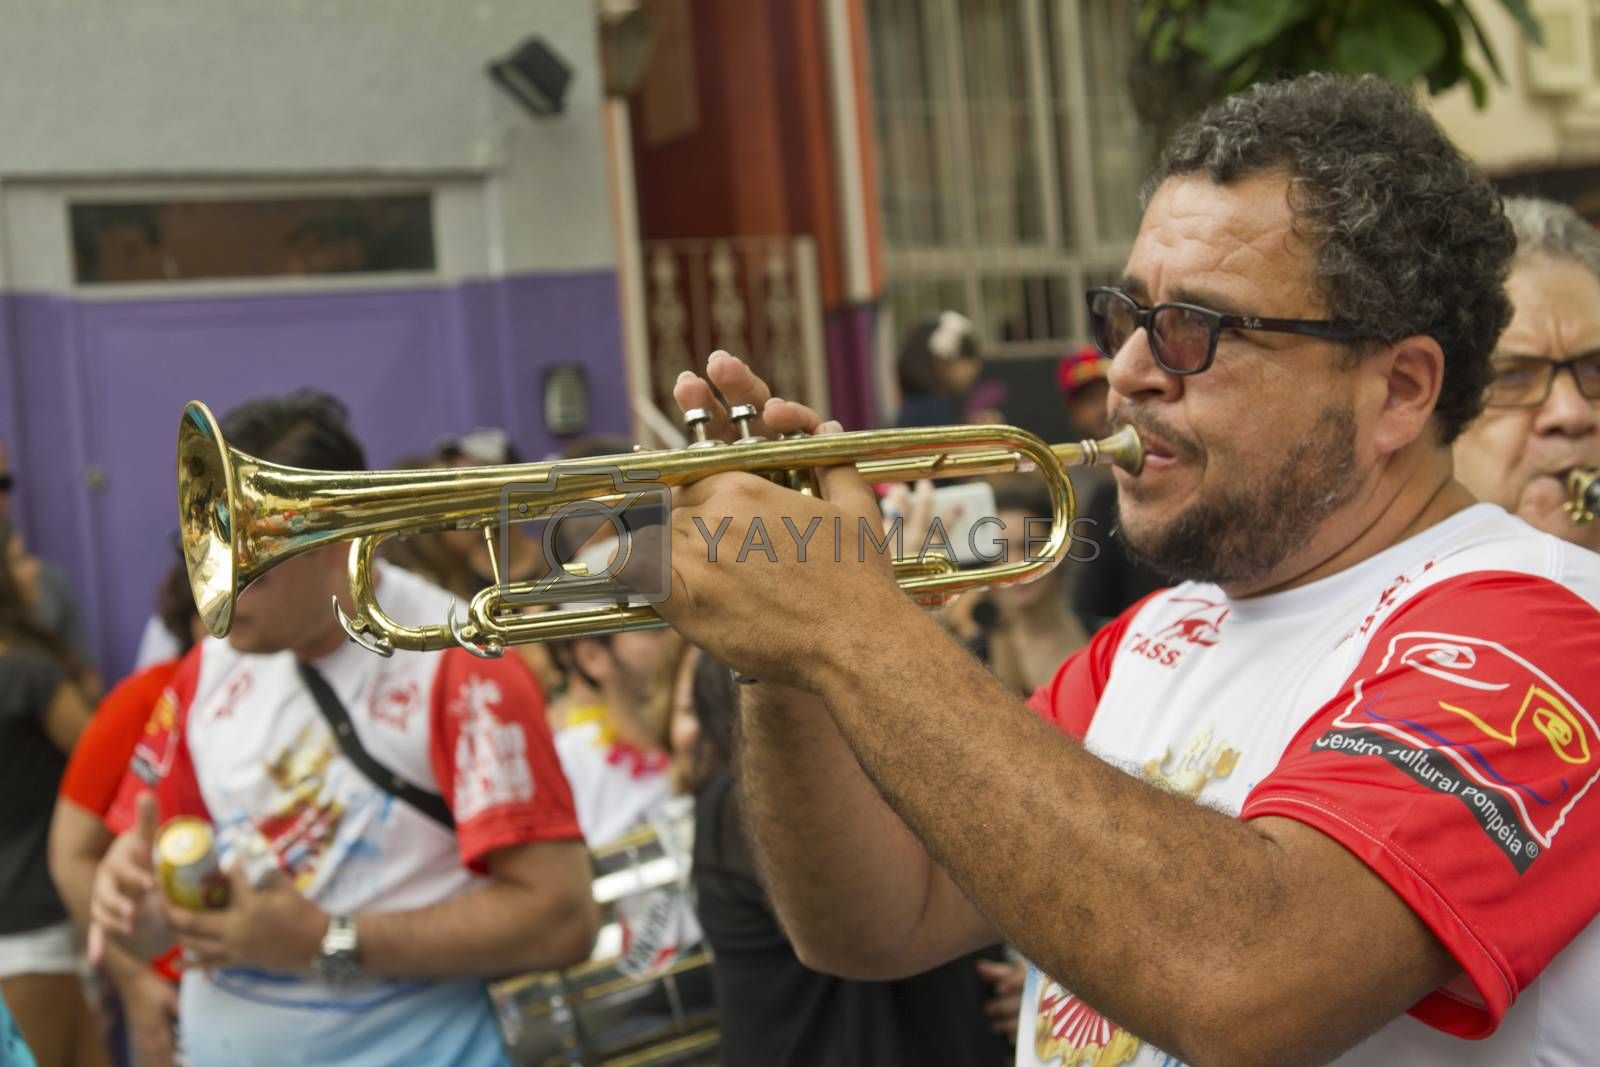 SAO PAULO, BRAZIL - JANUARY 31, 2015: An unidentified man playing trumpet in a traditional samba band participate in the annual Brazilian street carnival.